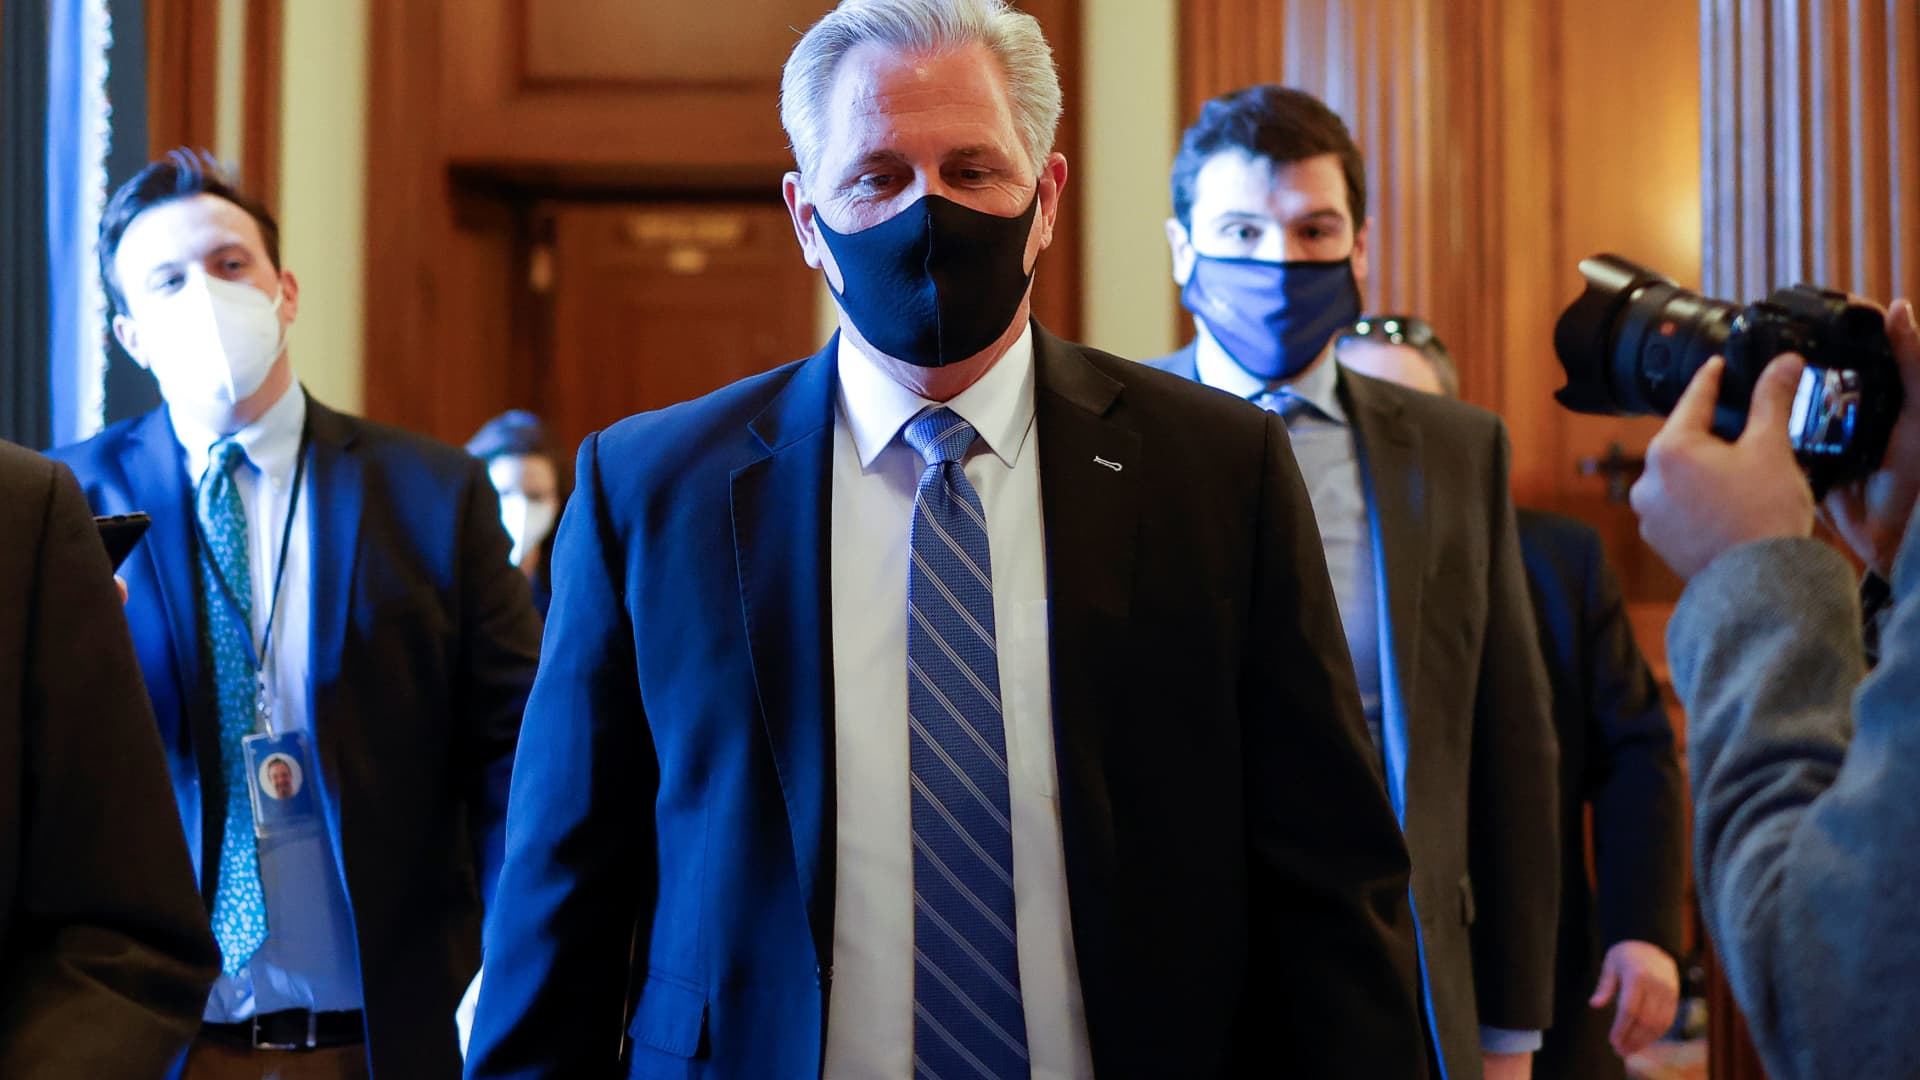 U.S. House Minority Leader Kevin McCarthy (R-CA) walks through the U.S. Capitol prior to a vote in the U.S. House of Representives on a Democratic-backed resolution that would punish U.S. Rep. Marjorie Taylor Greene for her incendiary remarks supporting violence against Democrats, on Capitol Hill in Washington, February 4, 2021.